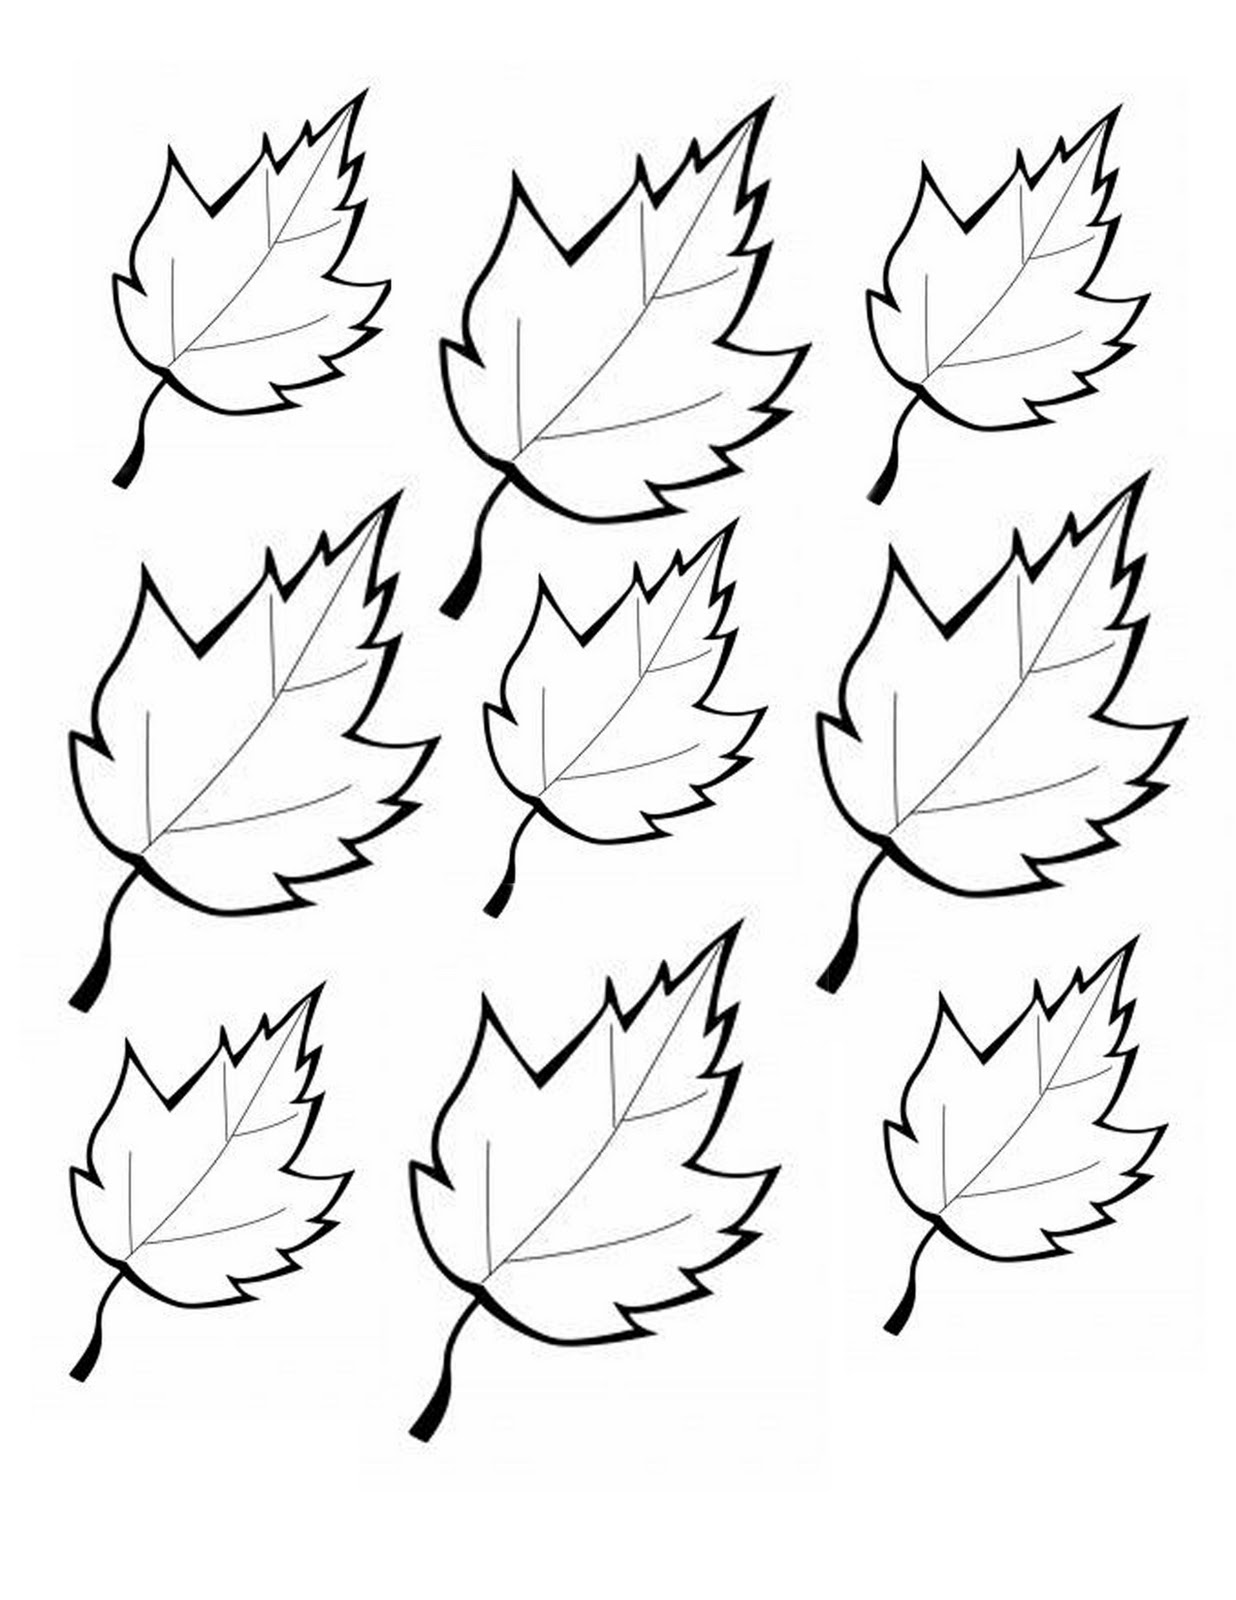 fall leaves print out grovecrest art fall leaf line drawing fall leaves print out